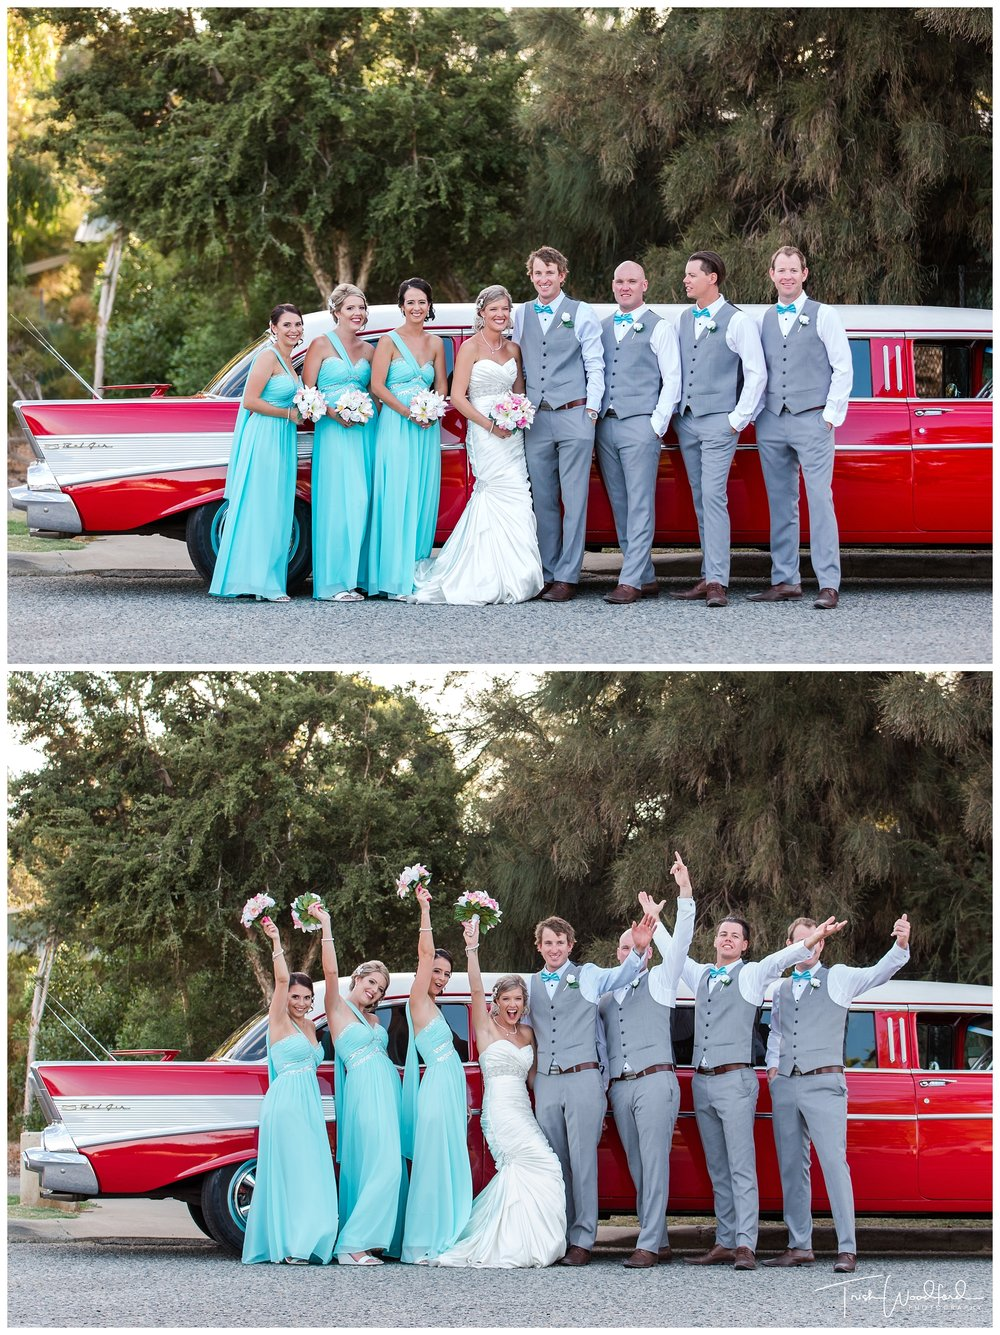 Red Vintage Limo Bridal Party Fremantle